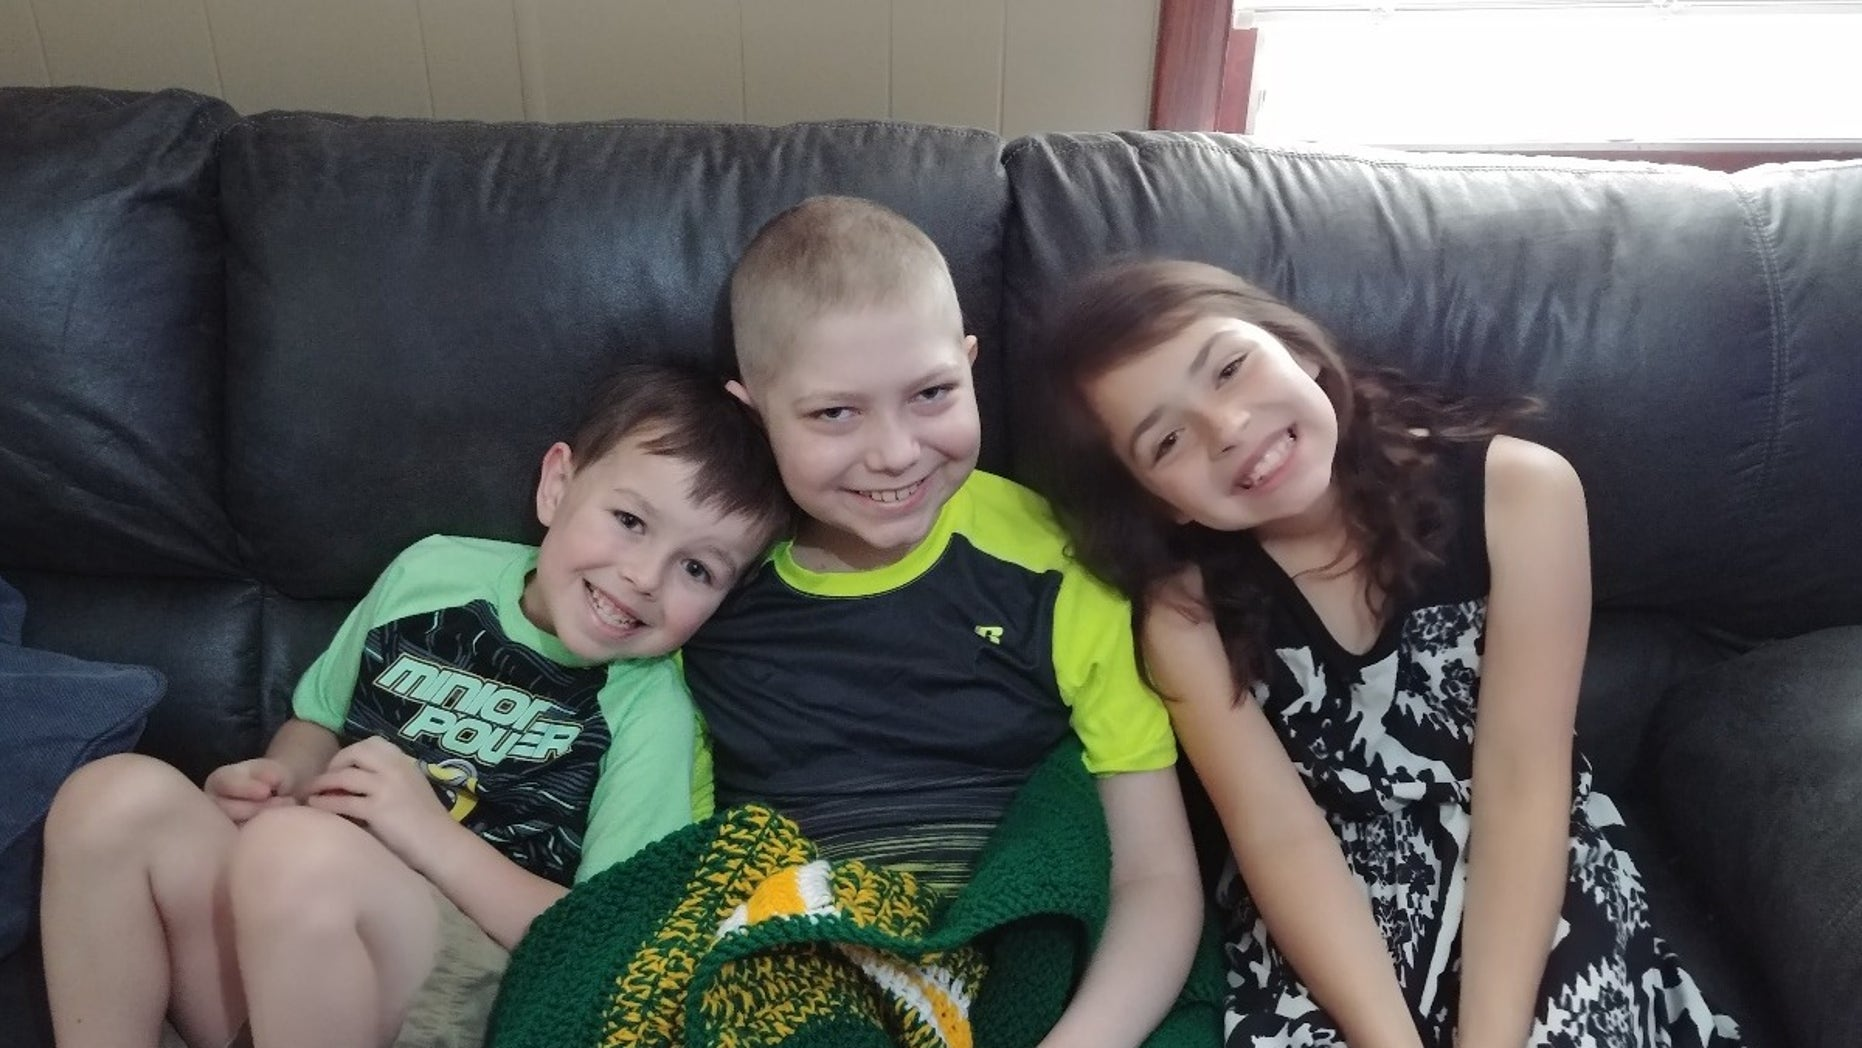 Caleb Hammond, who was diagnosed with leukemia in 2017, has been an avid racing fan since he was a toddler.